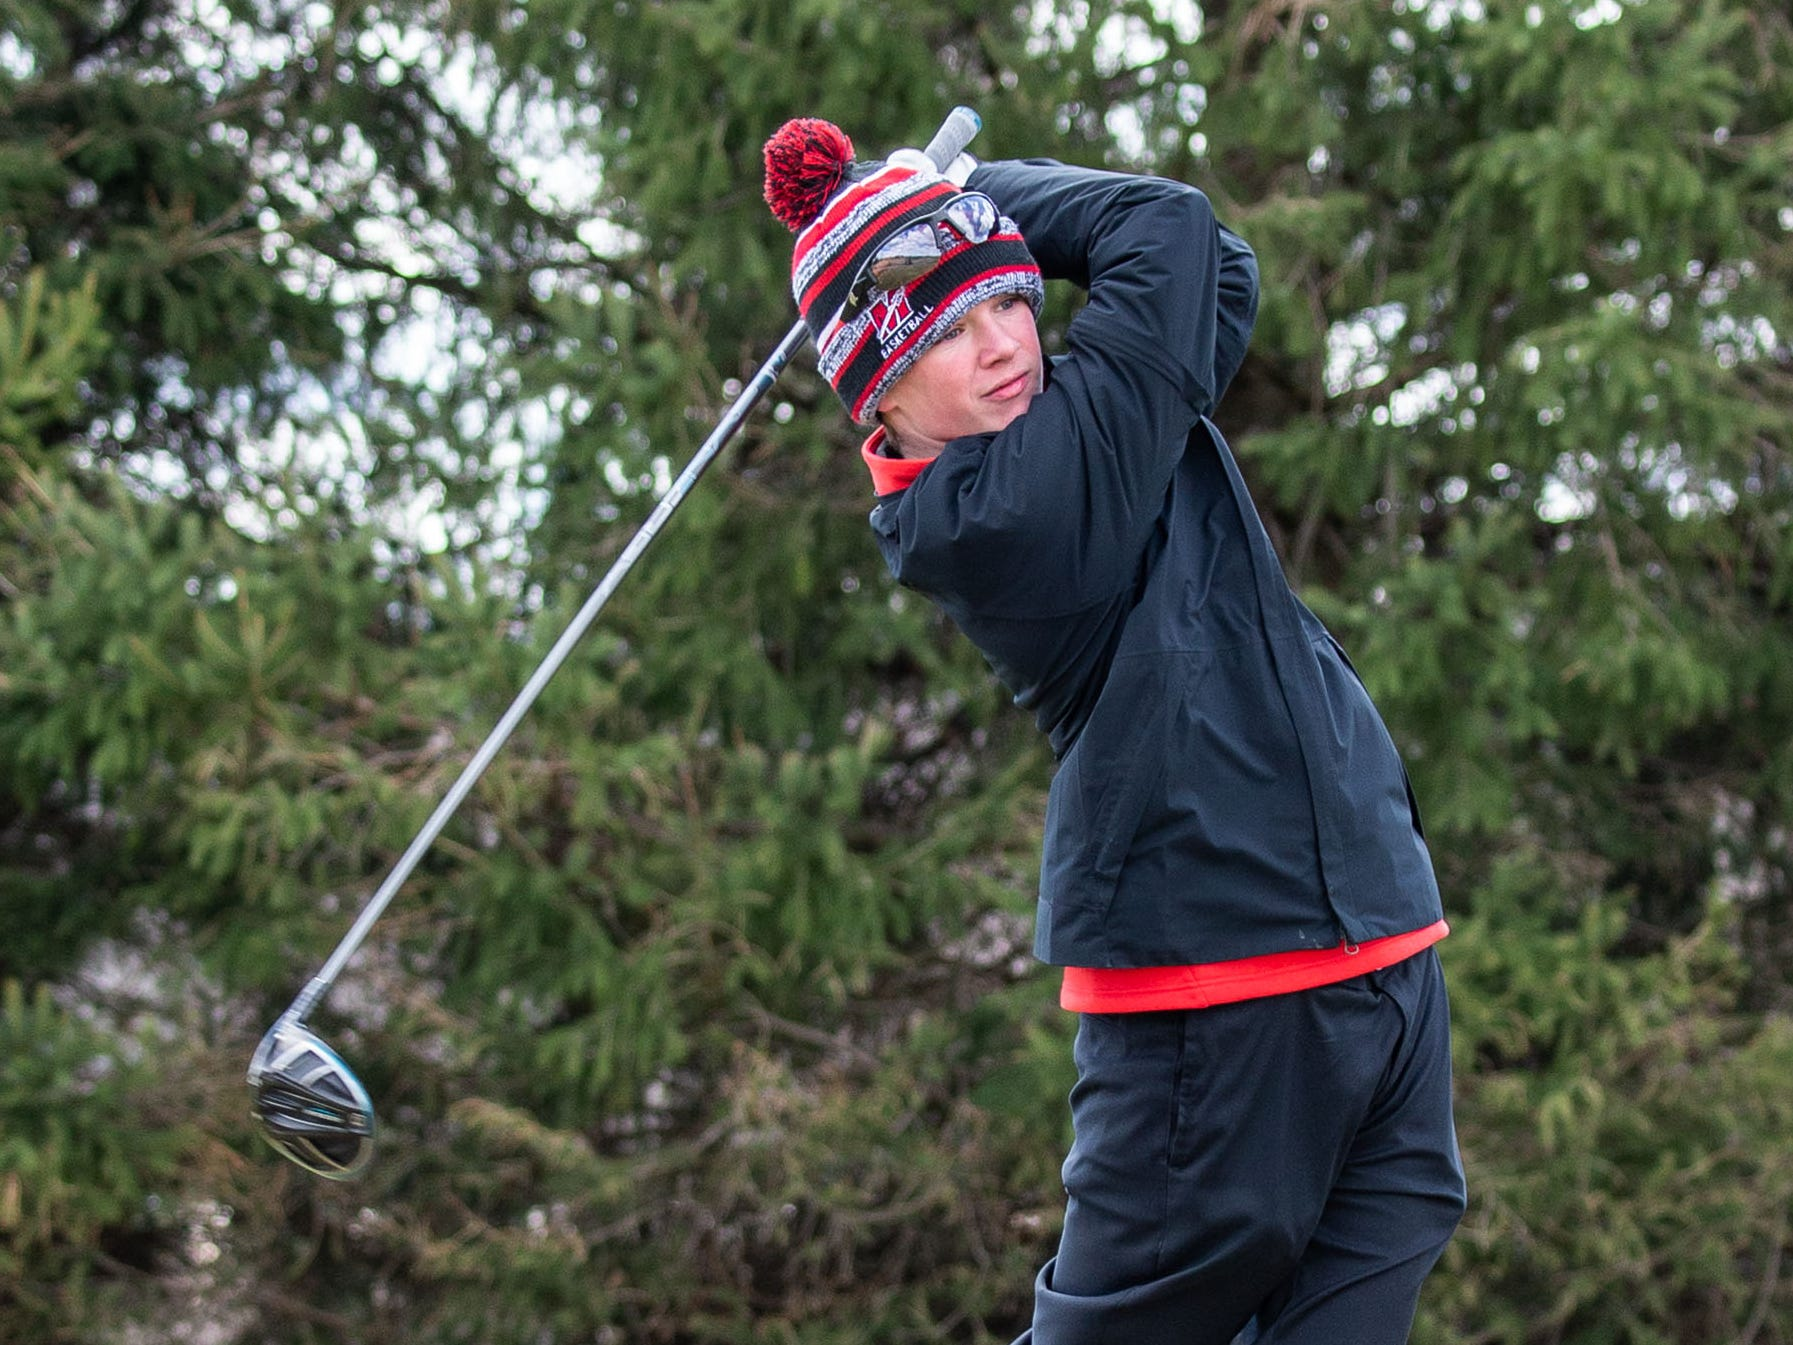 Muskego golfer Joey Drana competes in the Catholic Memorial 2019 Crusader Invitational at Broadlands Golf Club in North Prairie on Saturday, April 13, 2019.